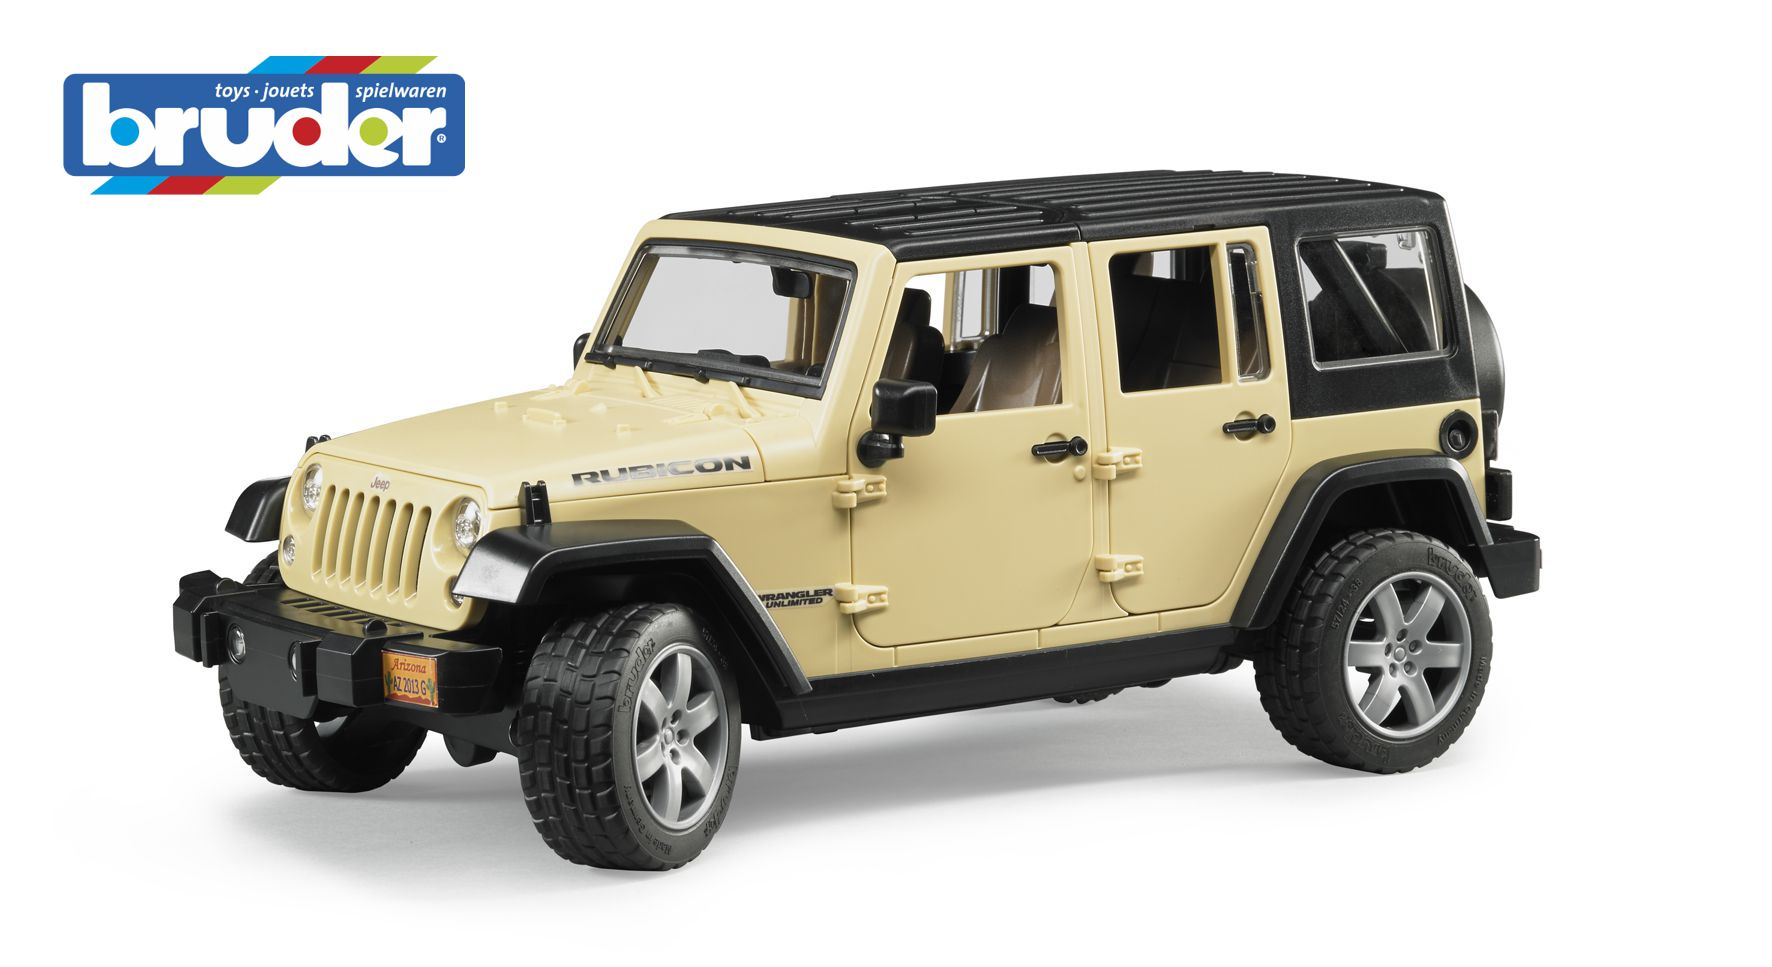 Bruder 2525 Jeep Wrangler Unlimited Rubicon